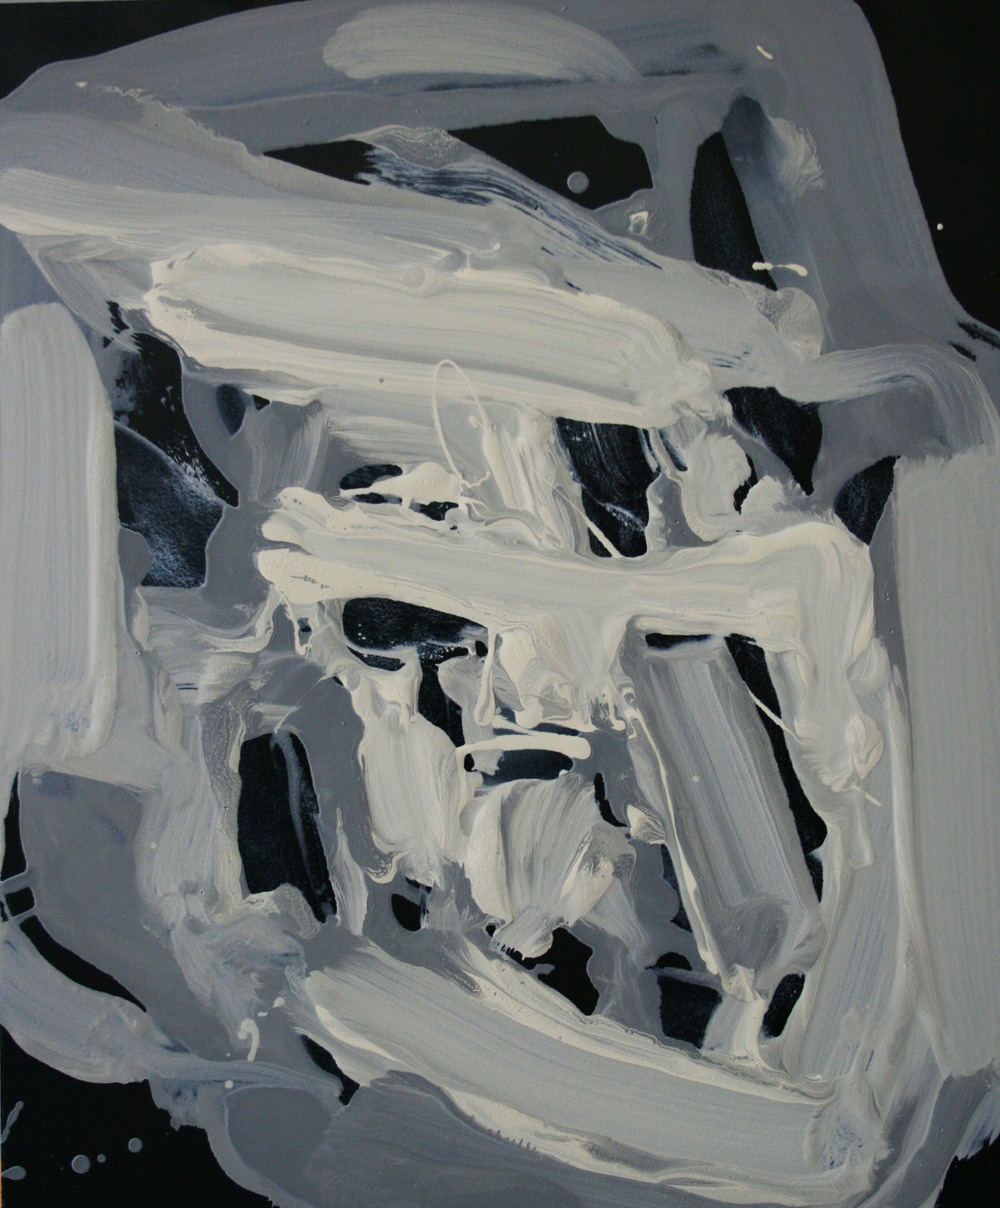 5. untitled grey painting 7 2011 oil on lacquered wood 30x25cm low res.jpg